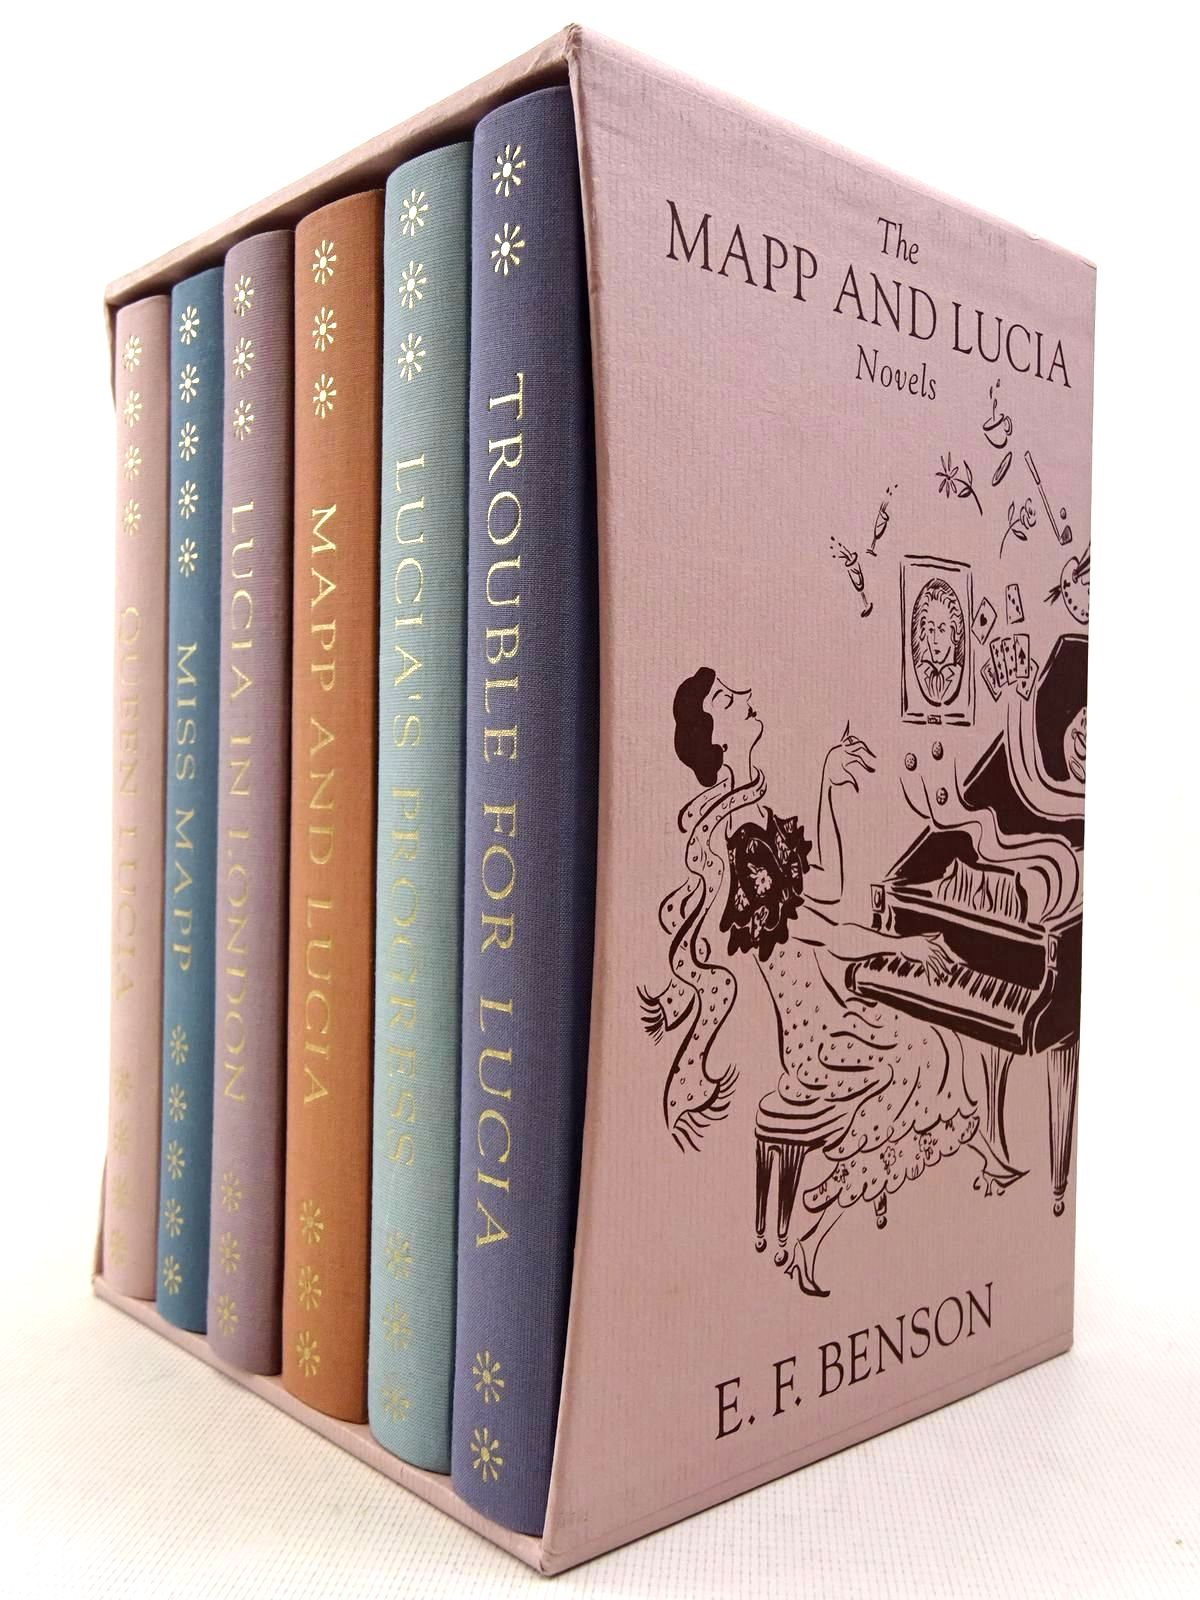 Photo of THE MAPP AND LUCIA NOVELS (6 VOLUMES) written by Benson, E.F. illustrated by Ledwidge, Natacha published by Folio Society (STOCK CODE: 2128755)  for sale by Stella & Rose's Books